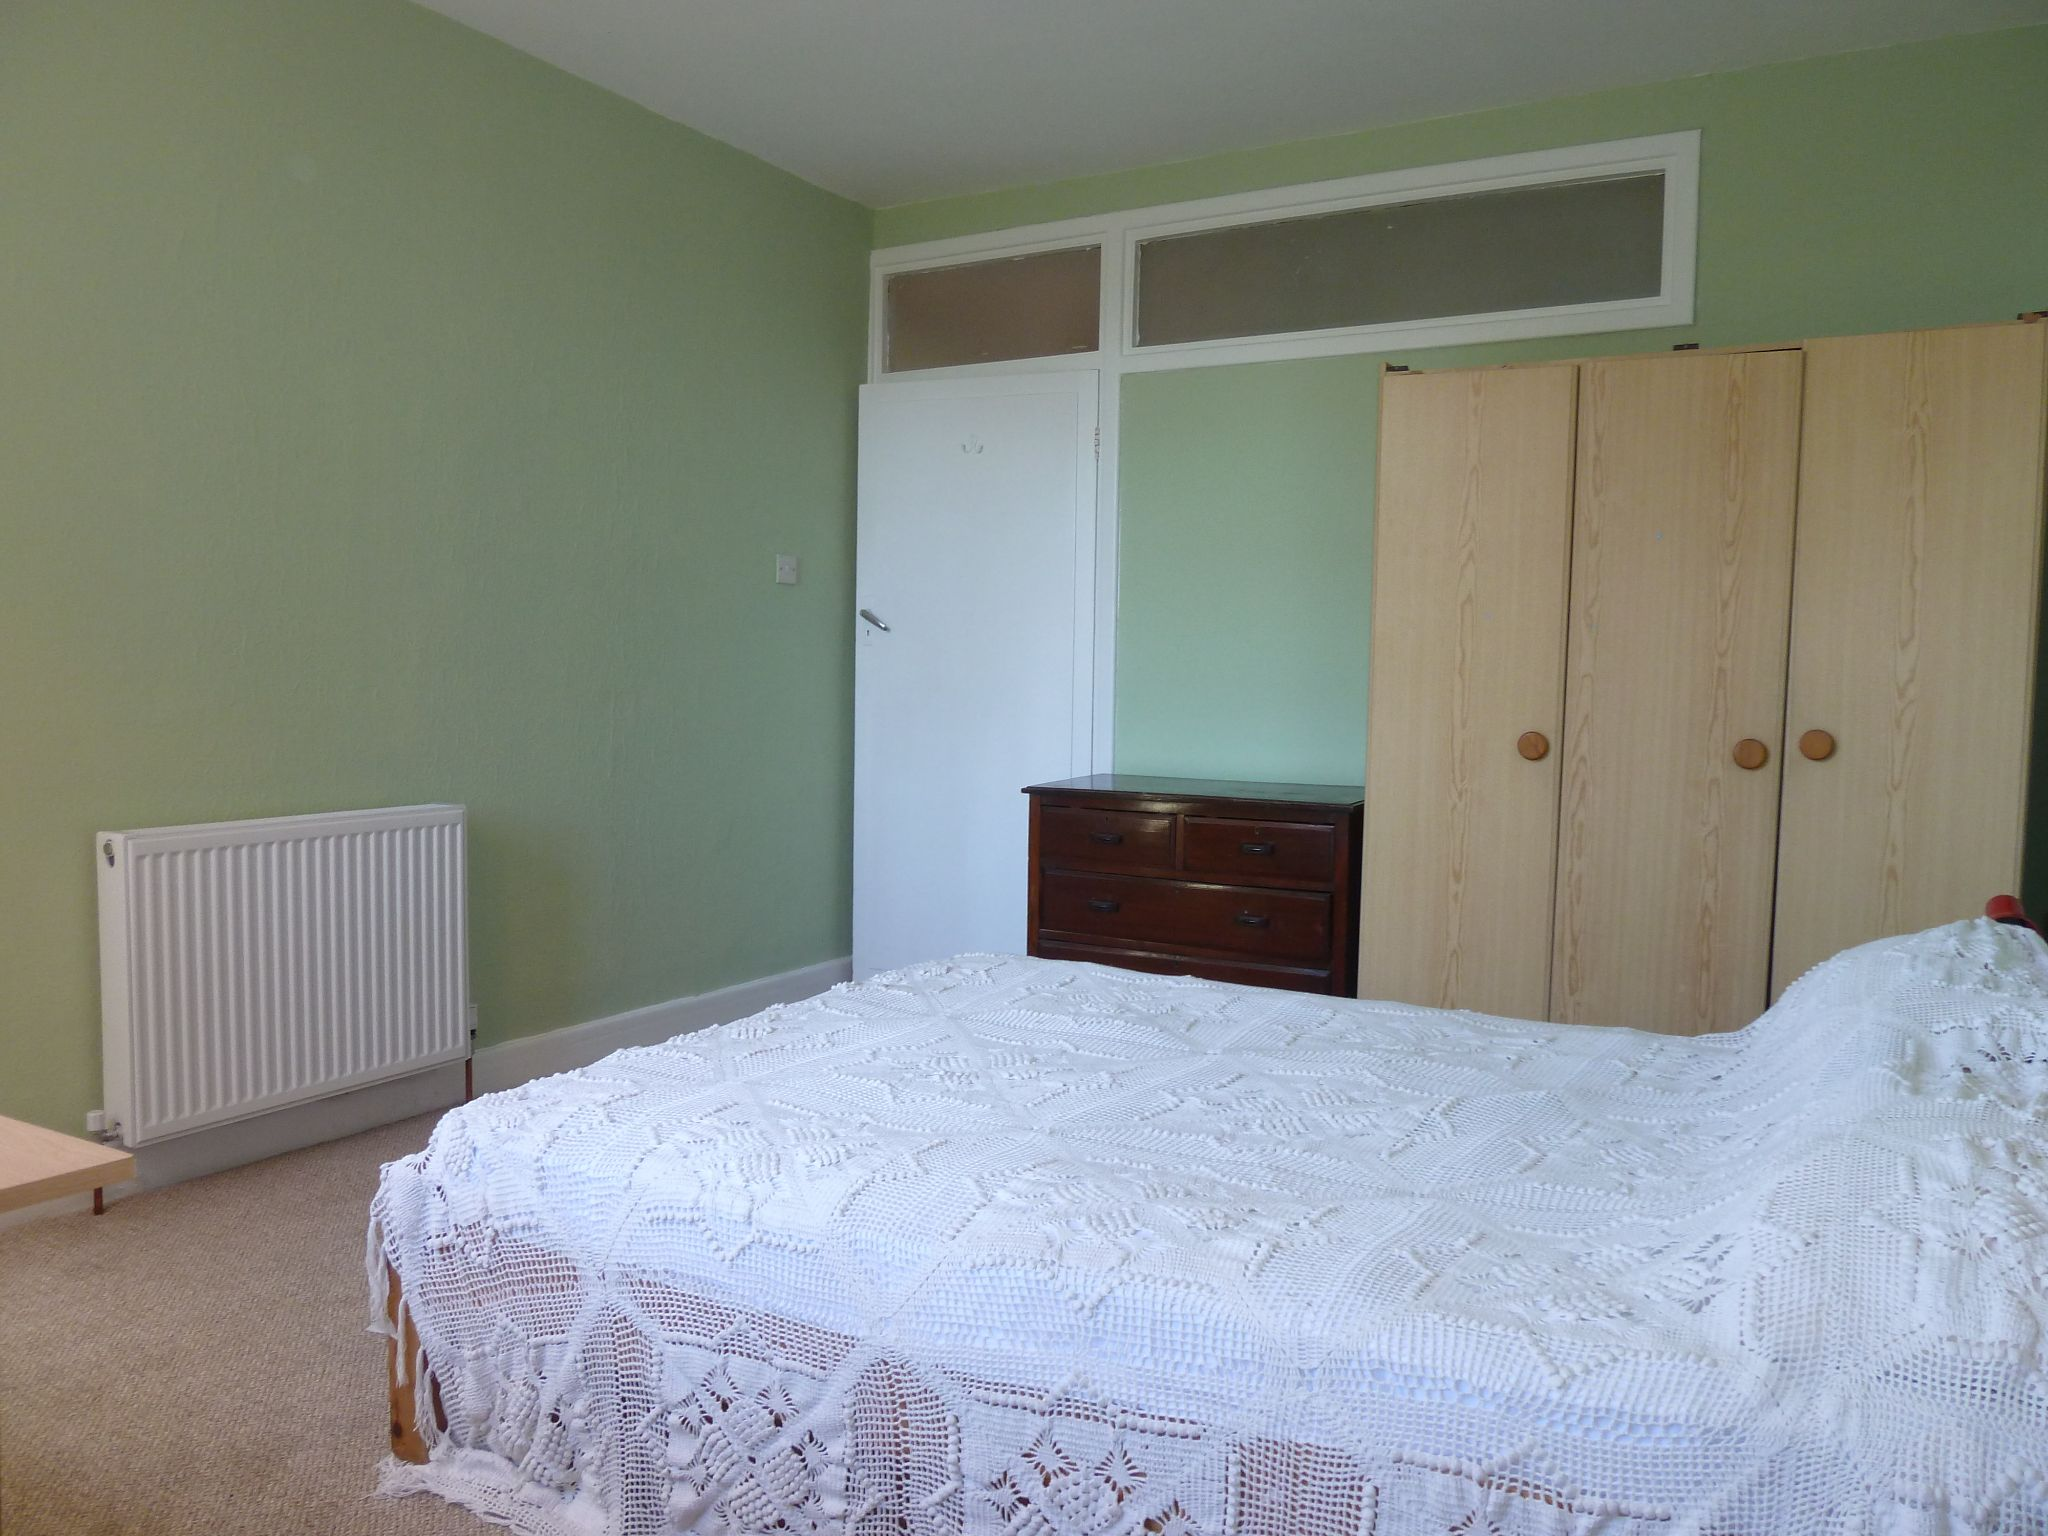 1 bedroom flat flat/apartment Under Offer in London - Double bedroom